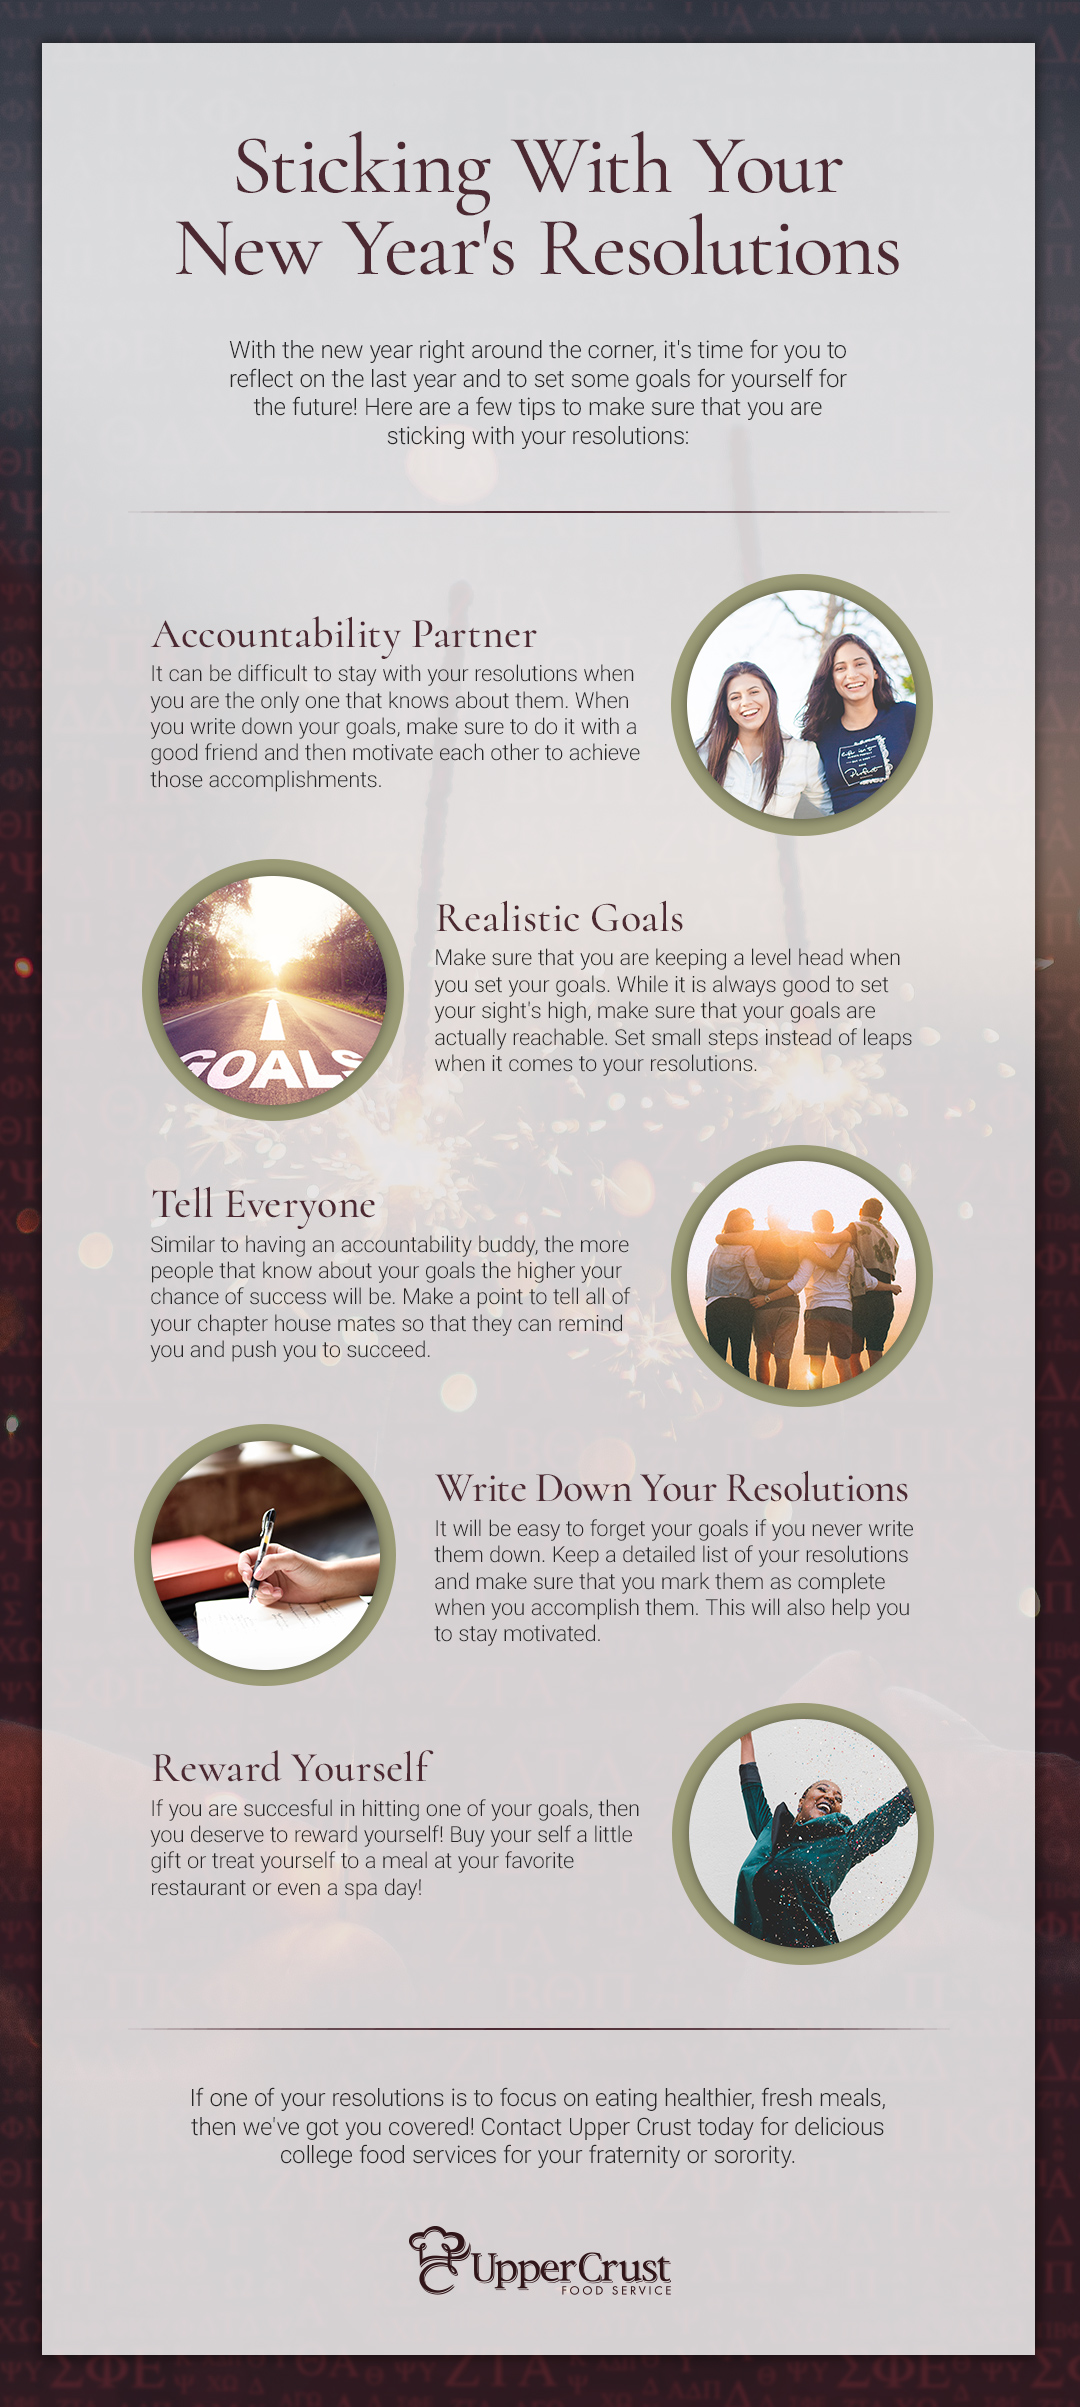 Sticking-With-Your-New-Years-Resolution-infographic